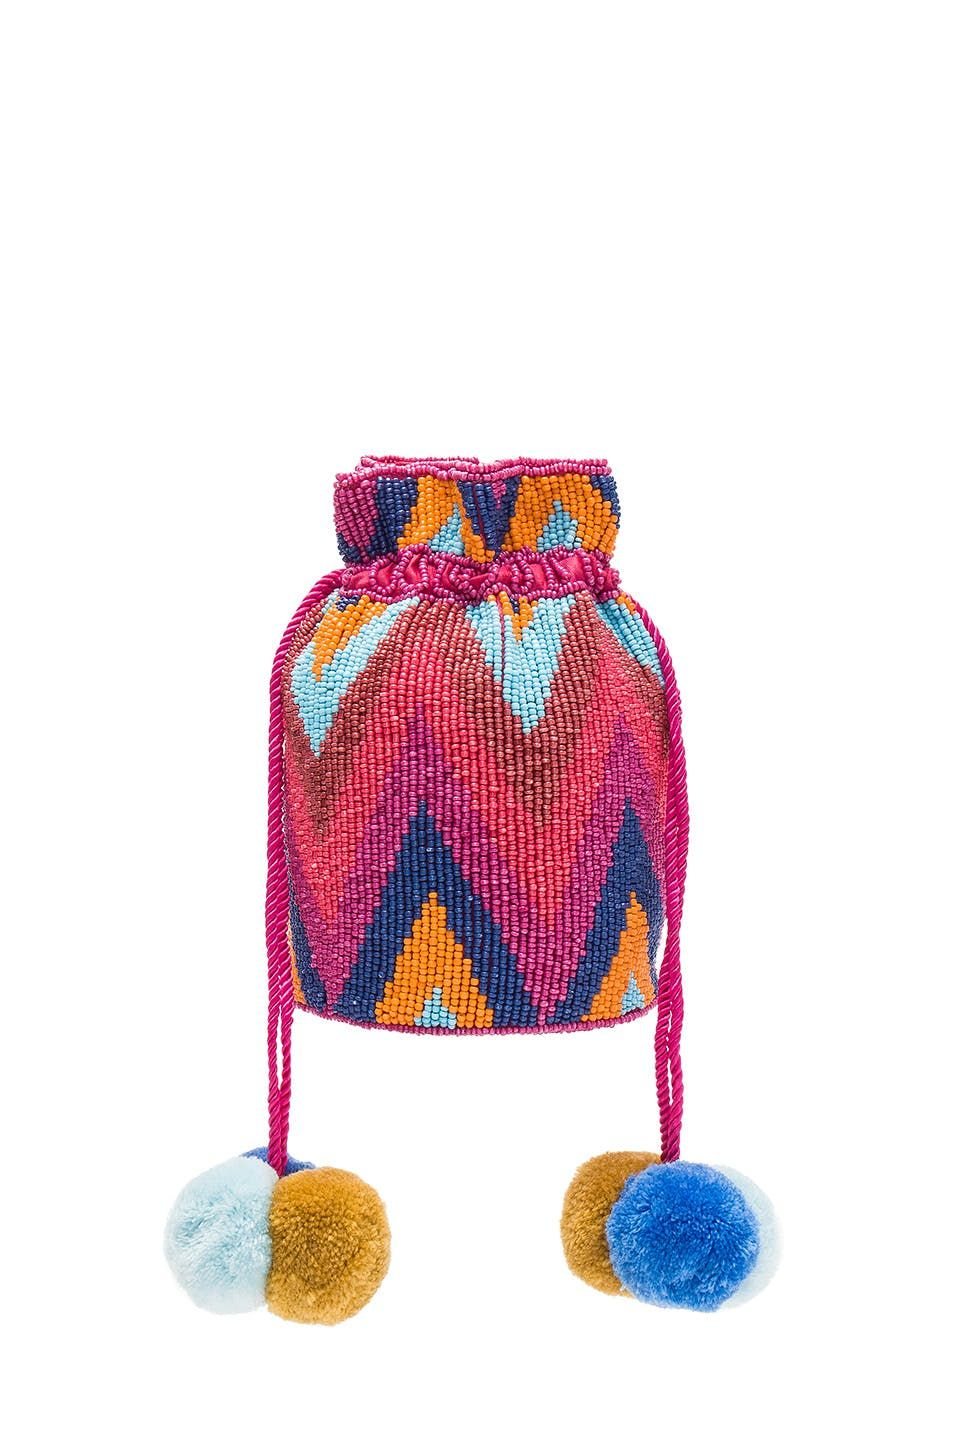 12 Beaded Bags That Will Replace Your Straw Bag This